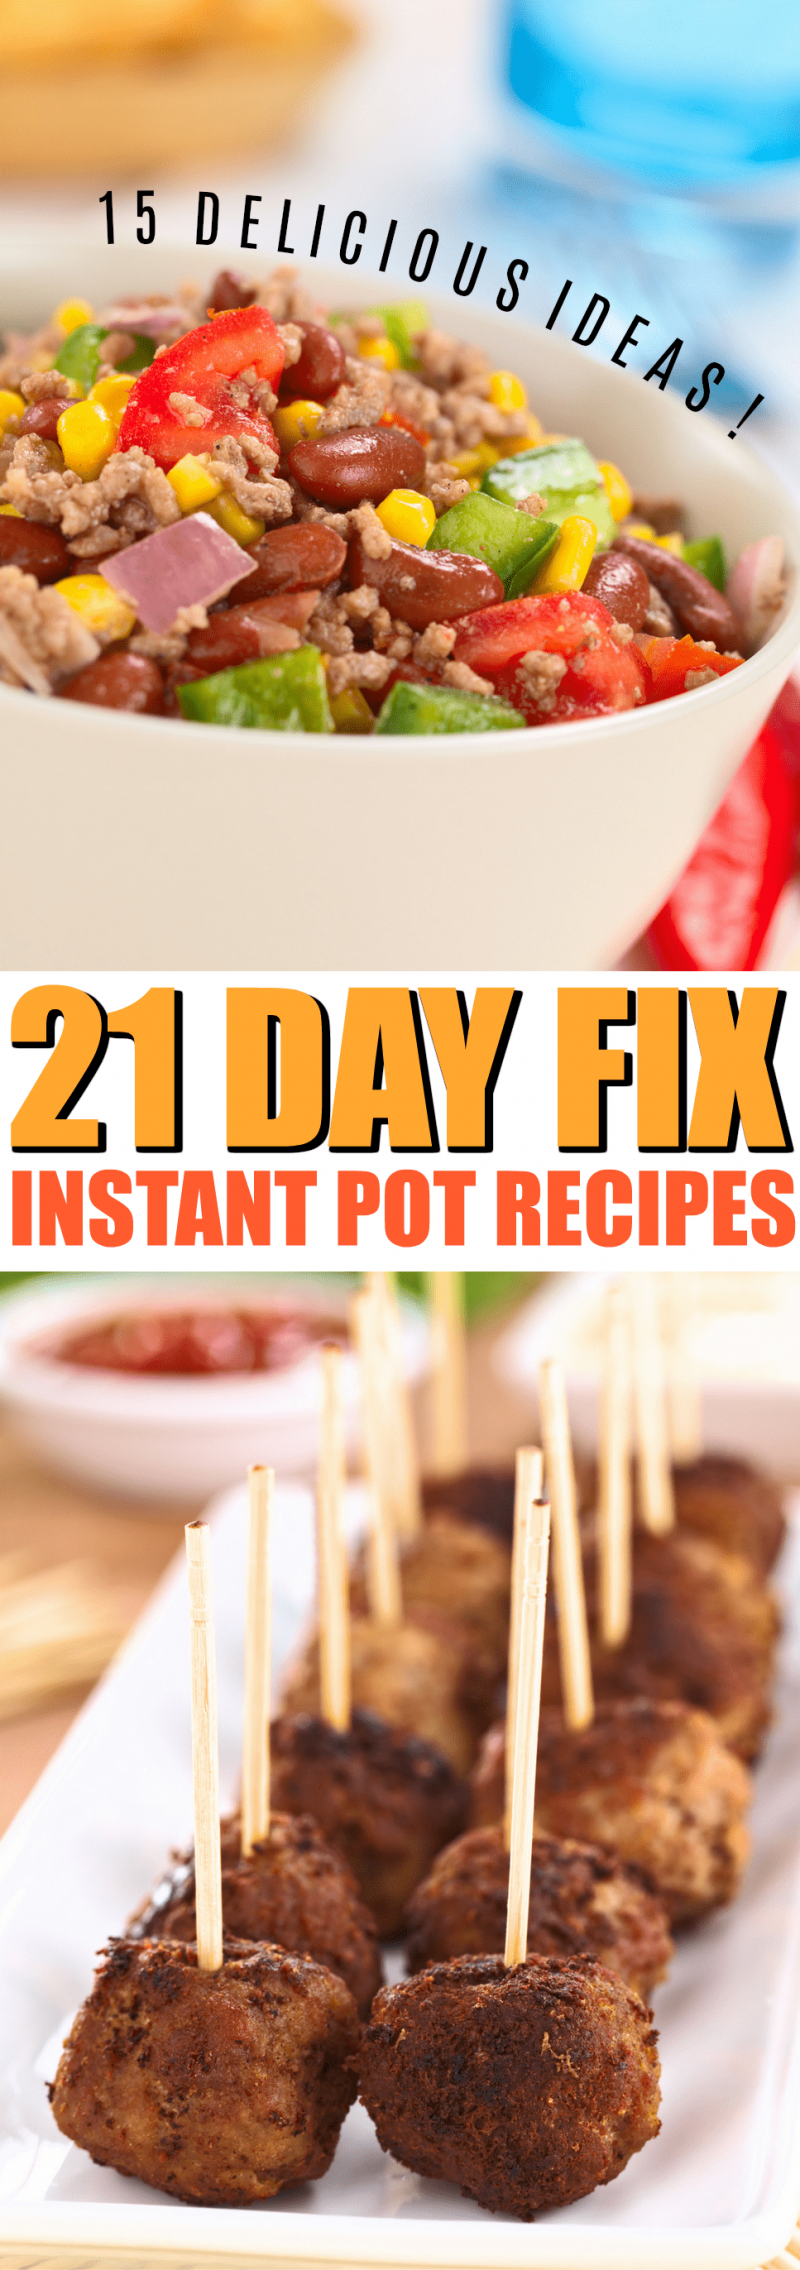 21 Day Fix Instant Pot Recipes